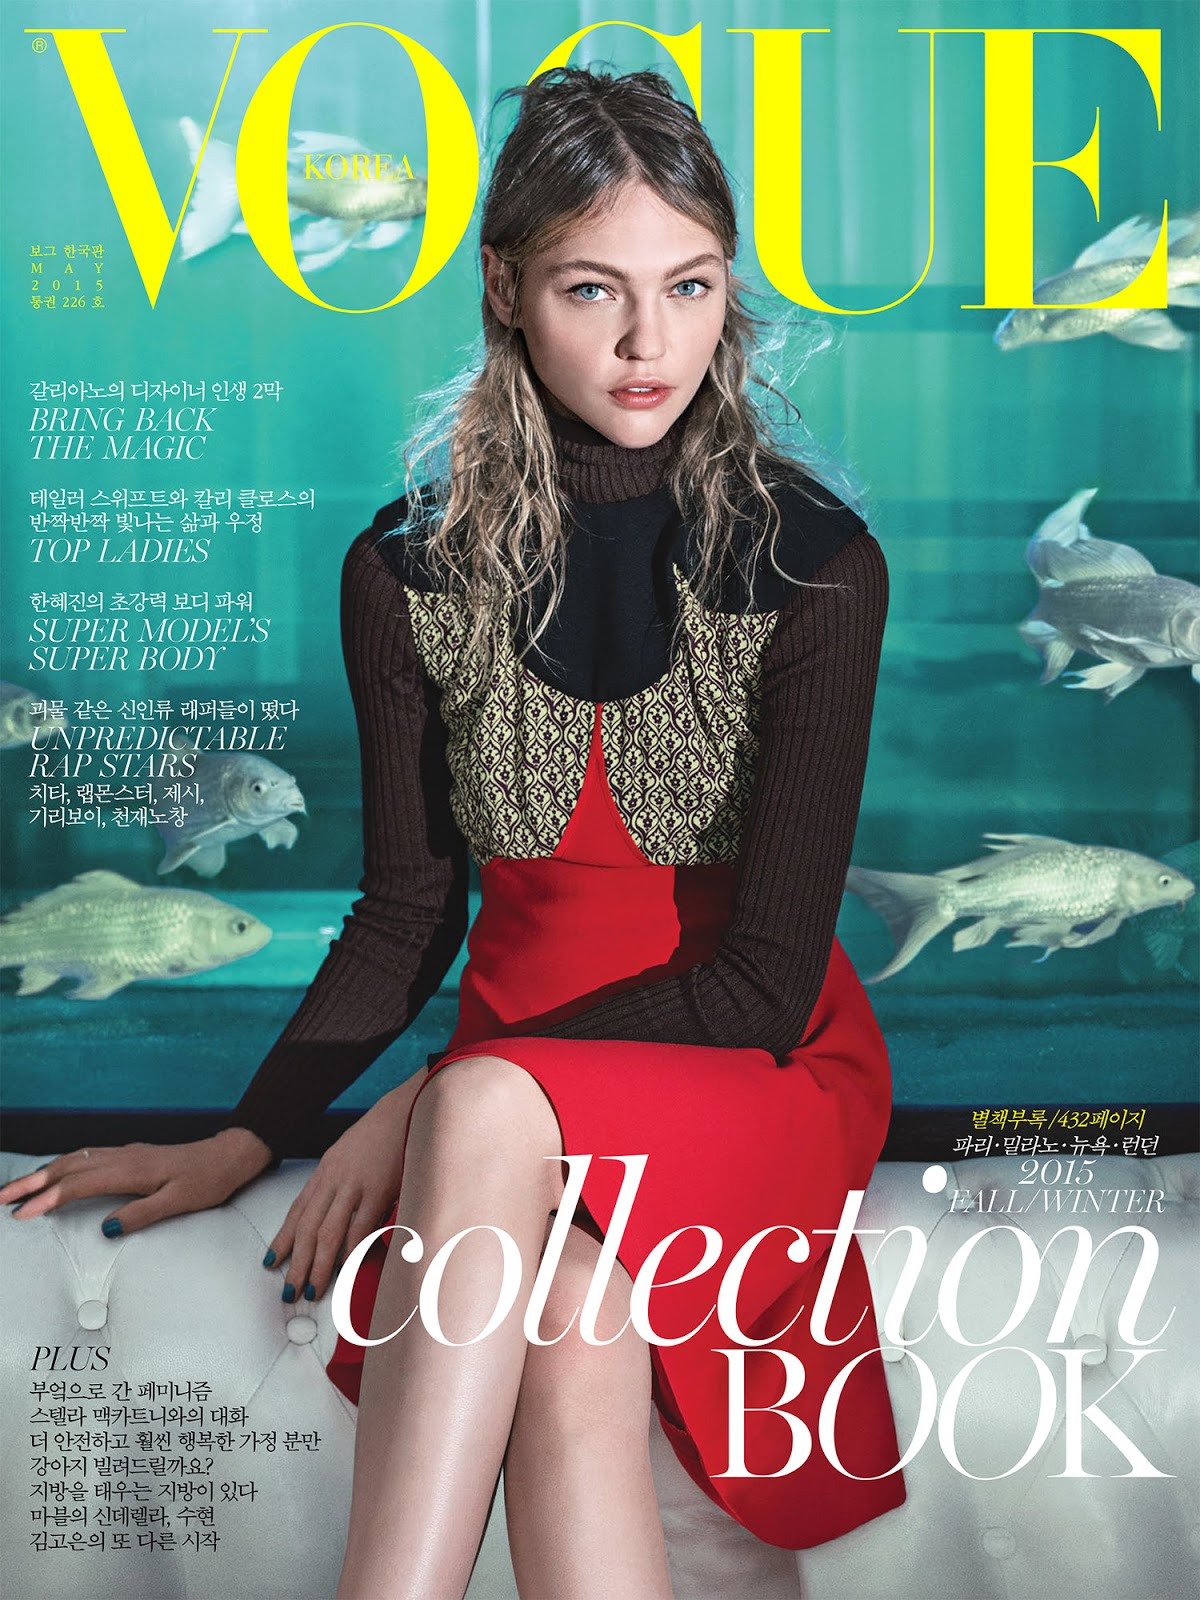 2019 year for women- Pivovarova sasha covers paris vogue october